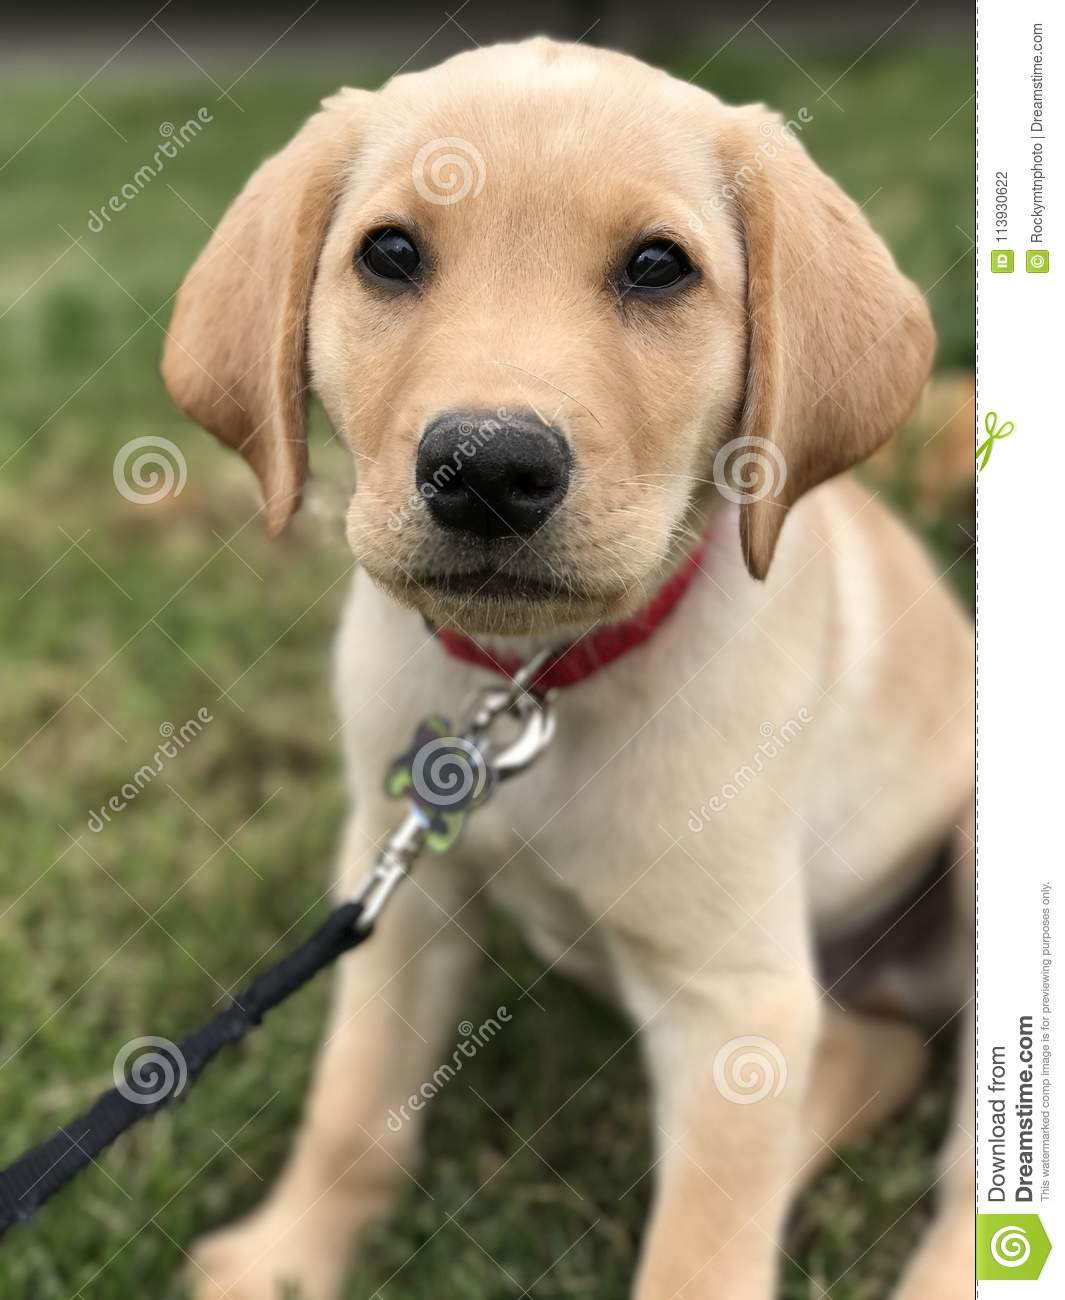 Yellow Labrador Puppy Sitting In The Grass Stock Photo Image Of Grass Leash 113930622